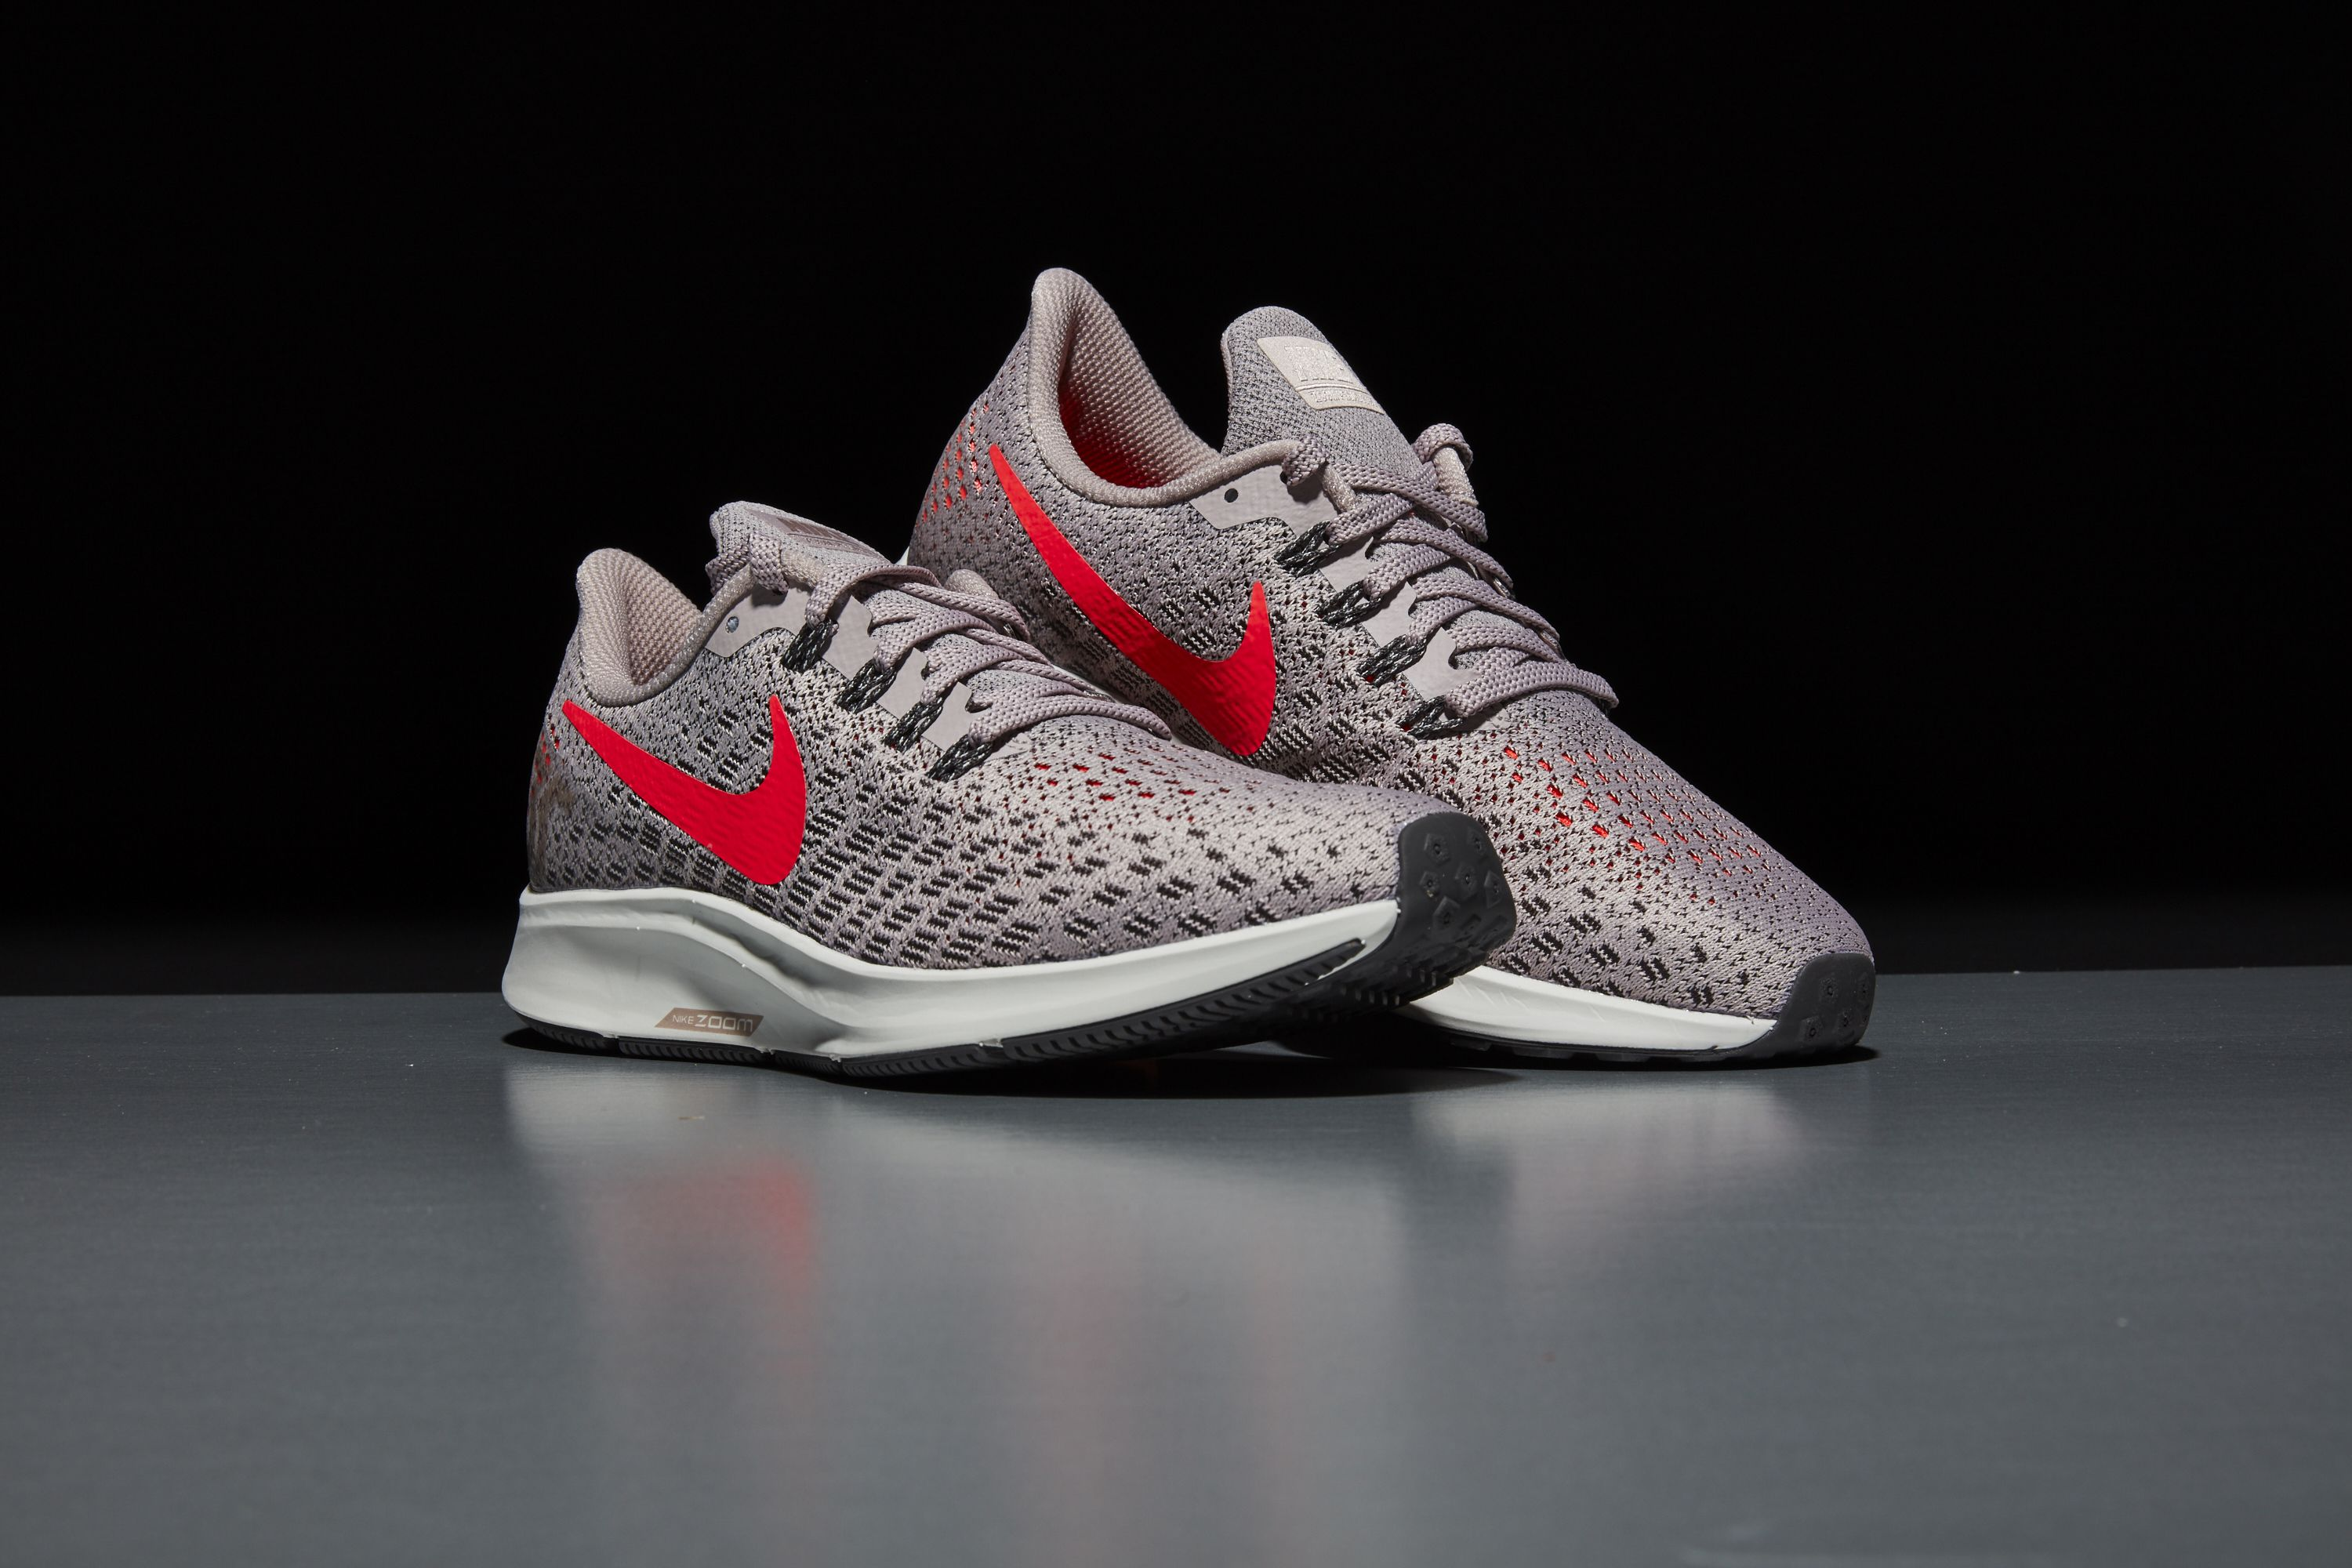 100% authentic 2b3e4 9e1c2 The Nike Air Zoom Pegasus 35 Is 36% off Right Now